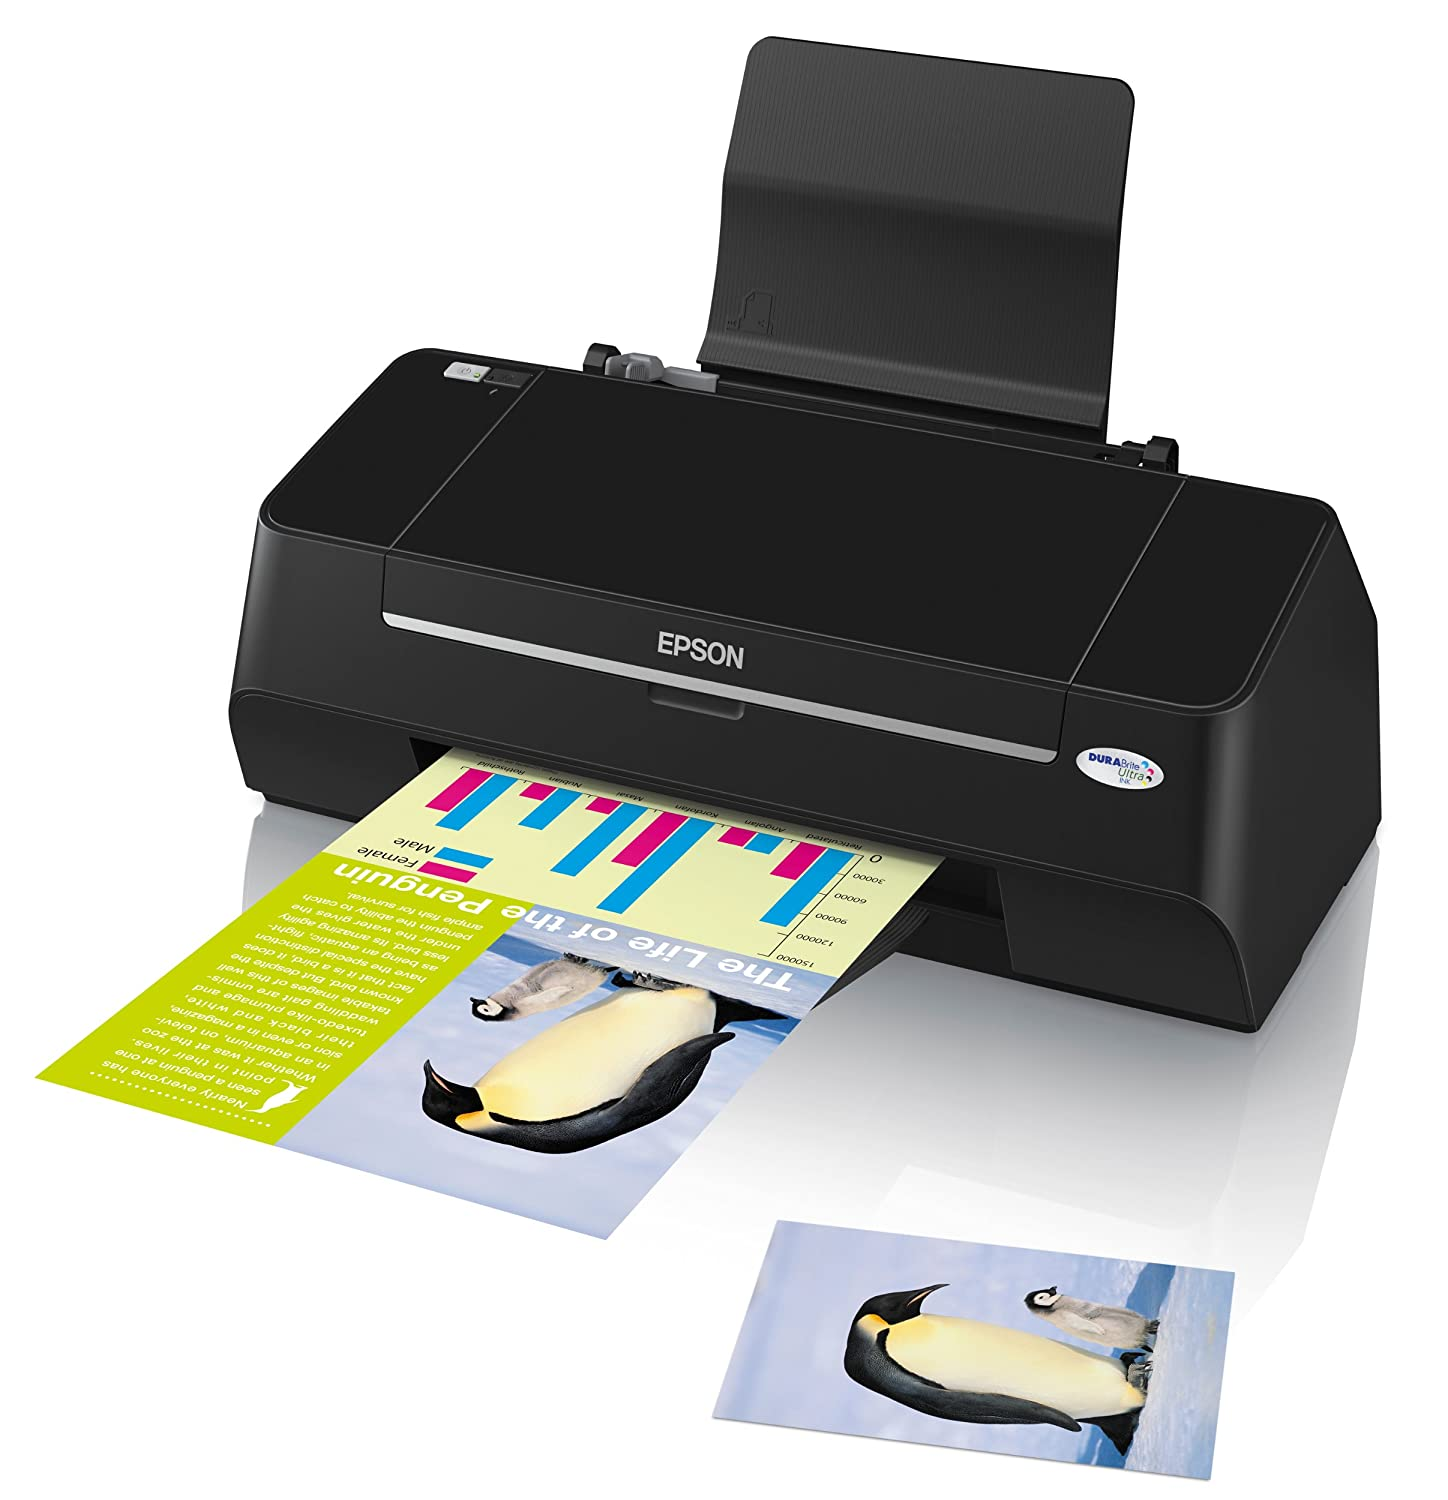 EPSON STYLUS S21 DRIVER FOR WINDOWS DOWNLOAD